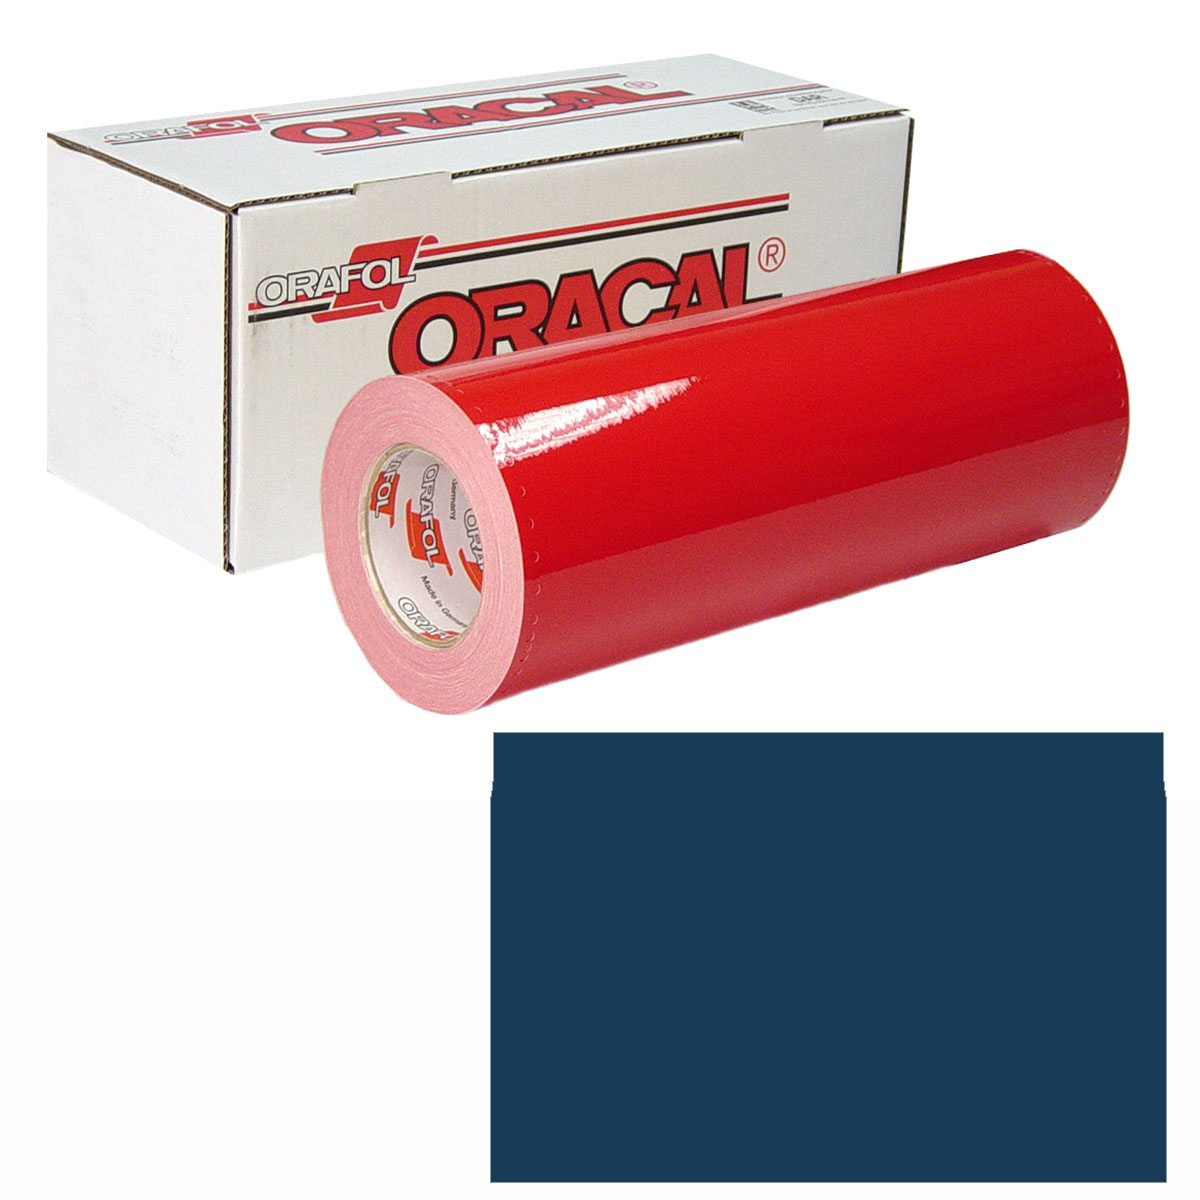 ORACAL 951M Unp 48In X 10Yd 189 Midnight Met